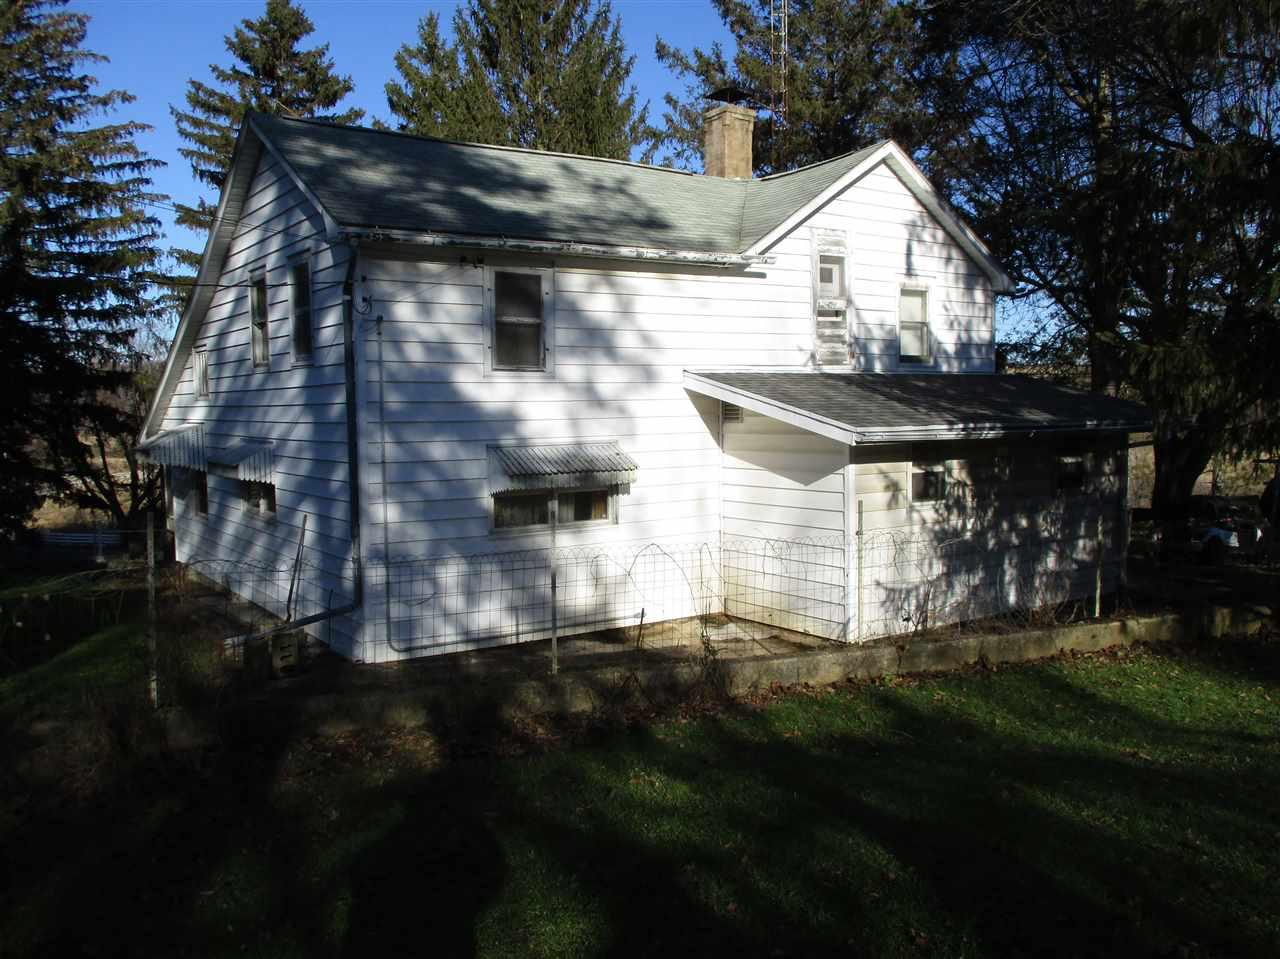 182.56 acres farmland with 96.84 acres pasture/woods/creek bottom and woods with peaceful quiet setting.  Several outbuildings and craftsman style house from early 1900's fair condition, but needing updates.